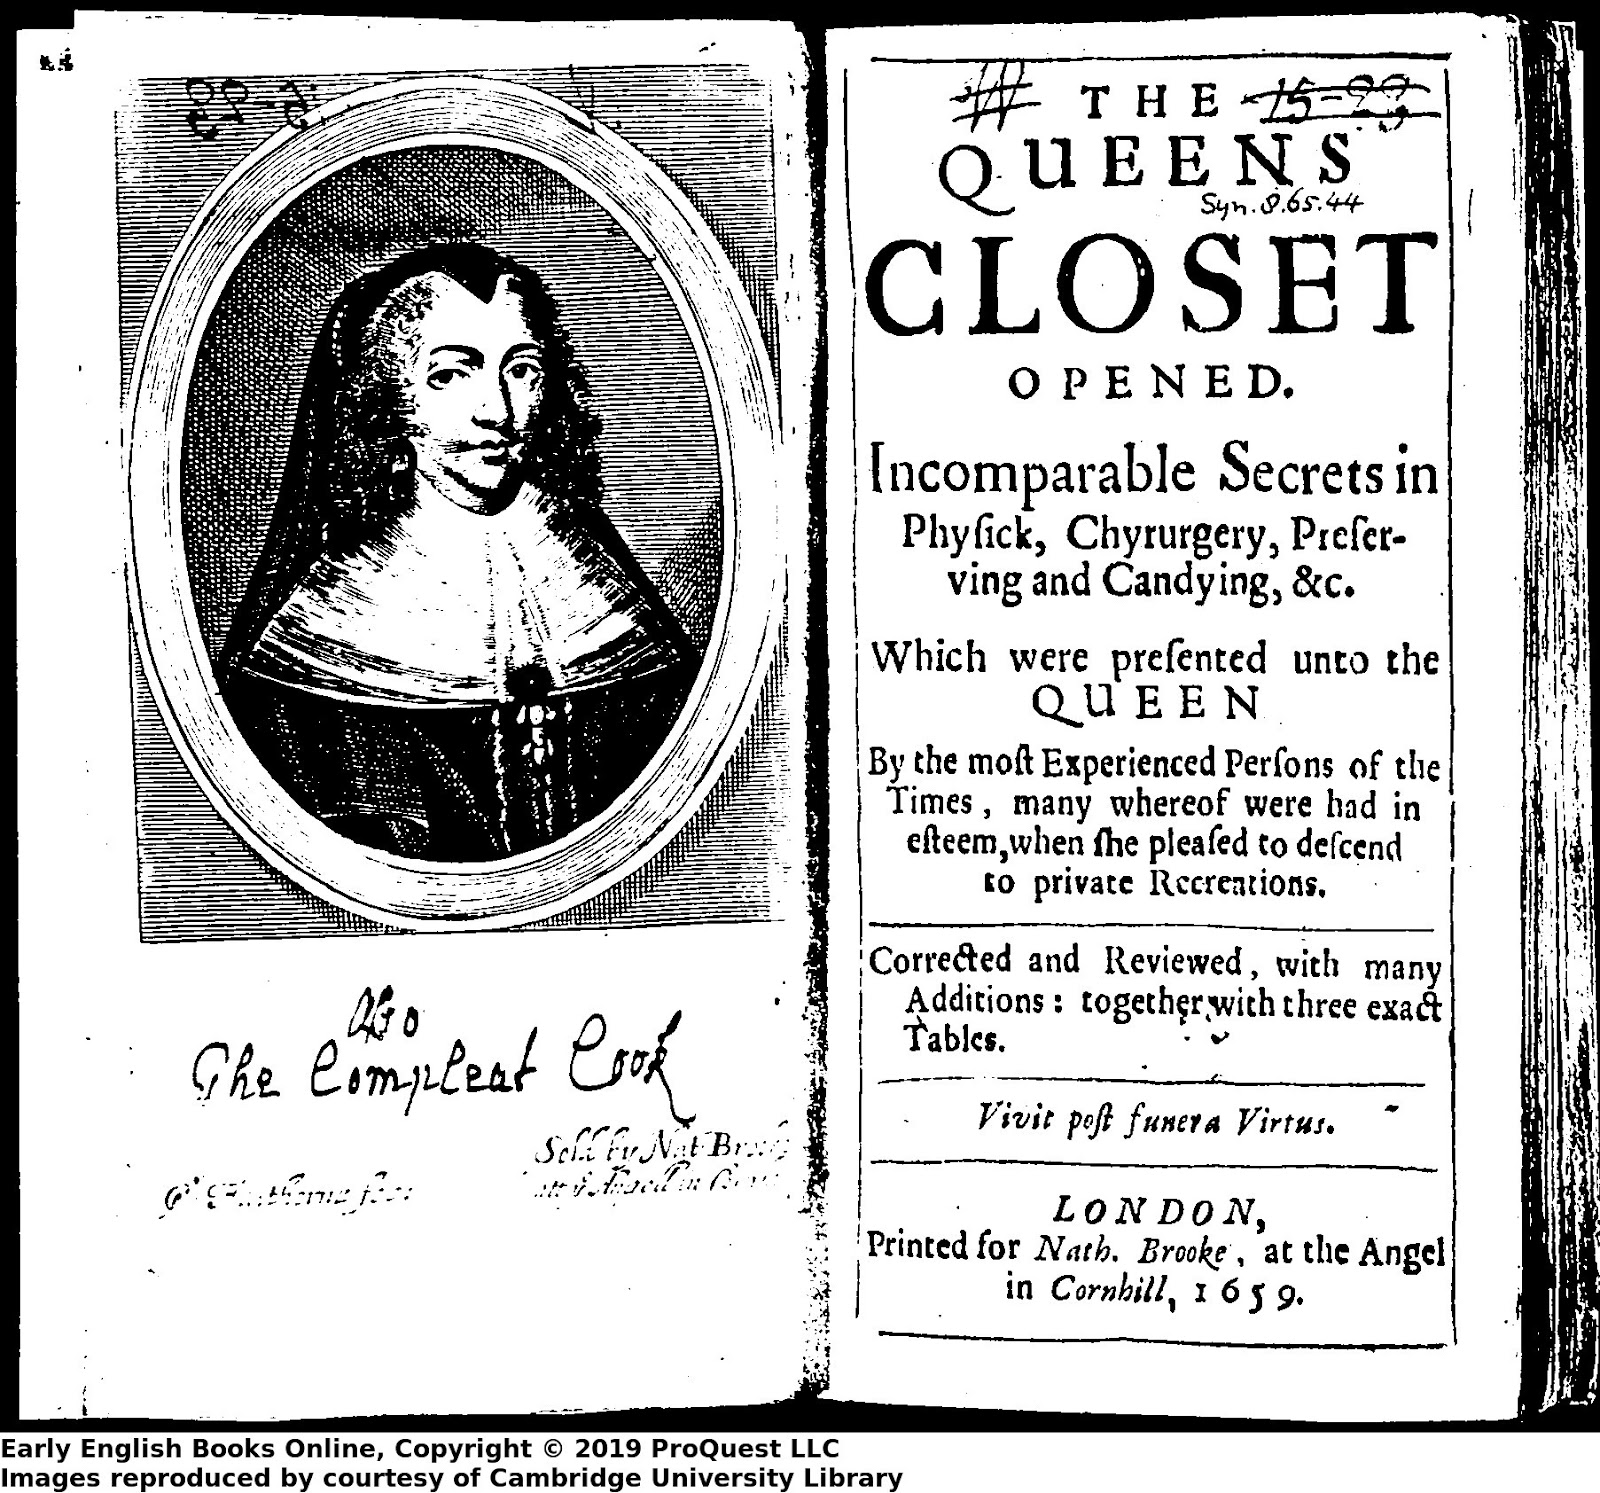 "Title of The Queens Closet Opened, with facing page portrait of Henrietta Maria. The title page contains the text ""The Queens Closet Opened. Incomparable Secrets in Physick, Chyrurgery, Preserving and Candying, &c.  Which were presented unto the Queen By the most Experienced Persons of the Times, may whereof were had in esteem, when she peased to descend to private recreations. Corrected and Reviewed, with many Additions: together with three exact Tables. Vivit post funera Virtus. London, Printed for Nath. Brooke, at the Angel in Cornhill, 1659"